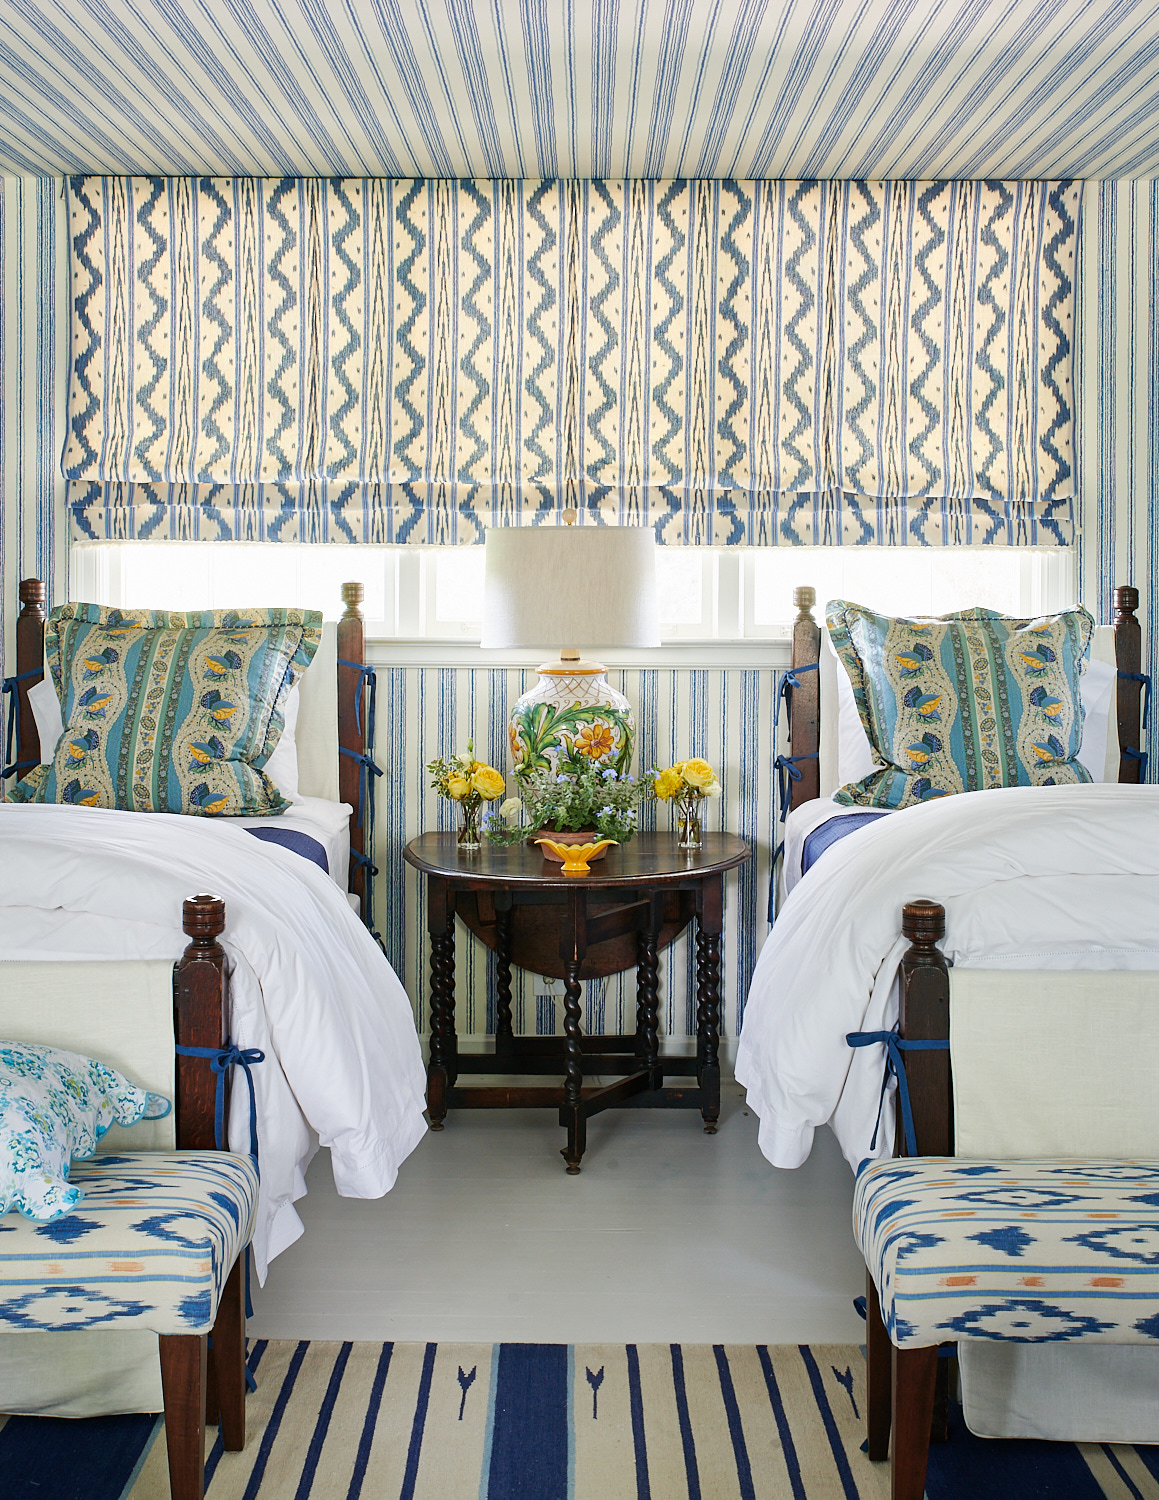 Large roman shades, twin beds with shams pillows, and matching upholstered benches